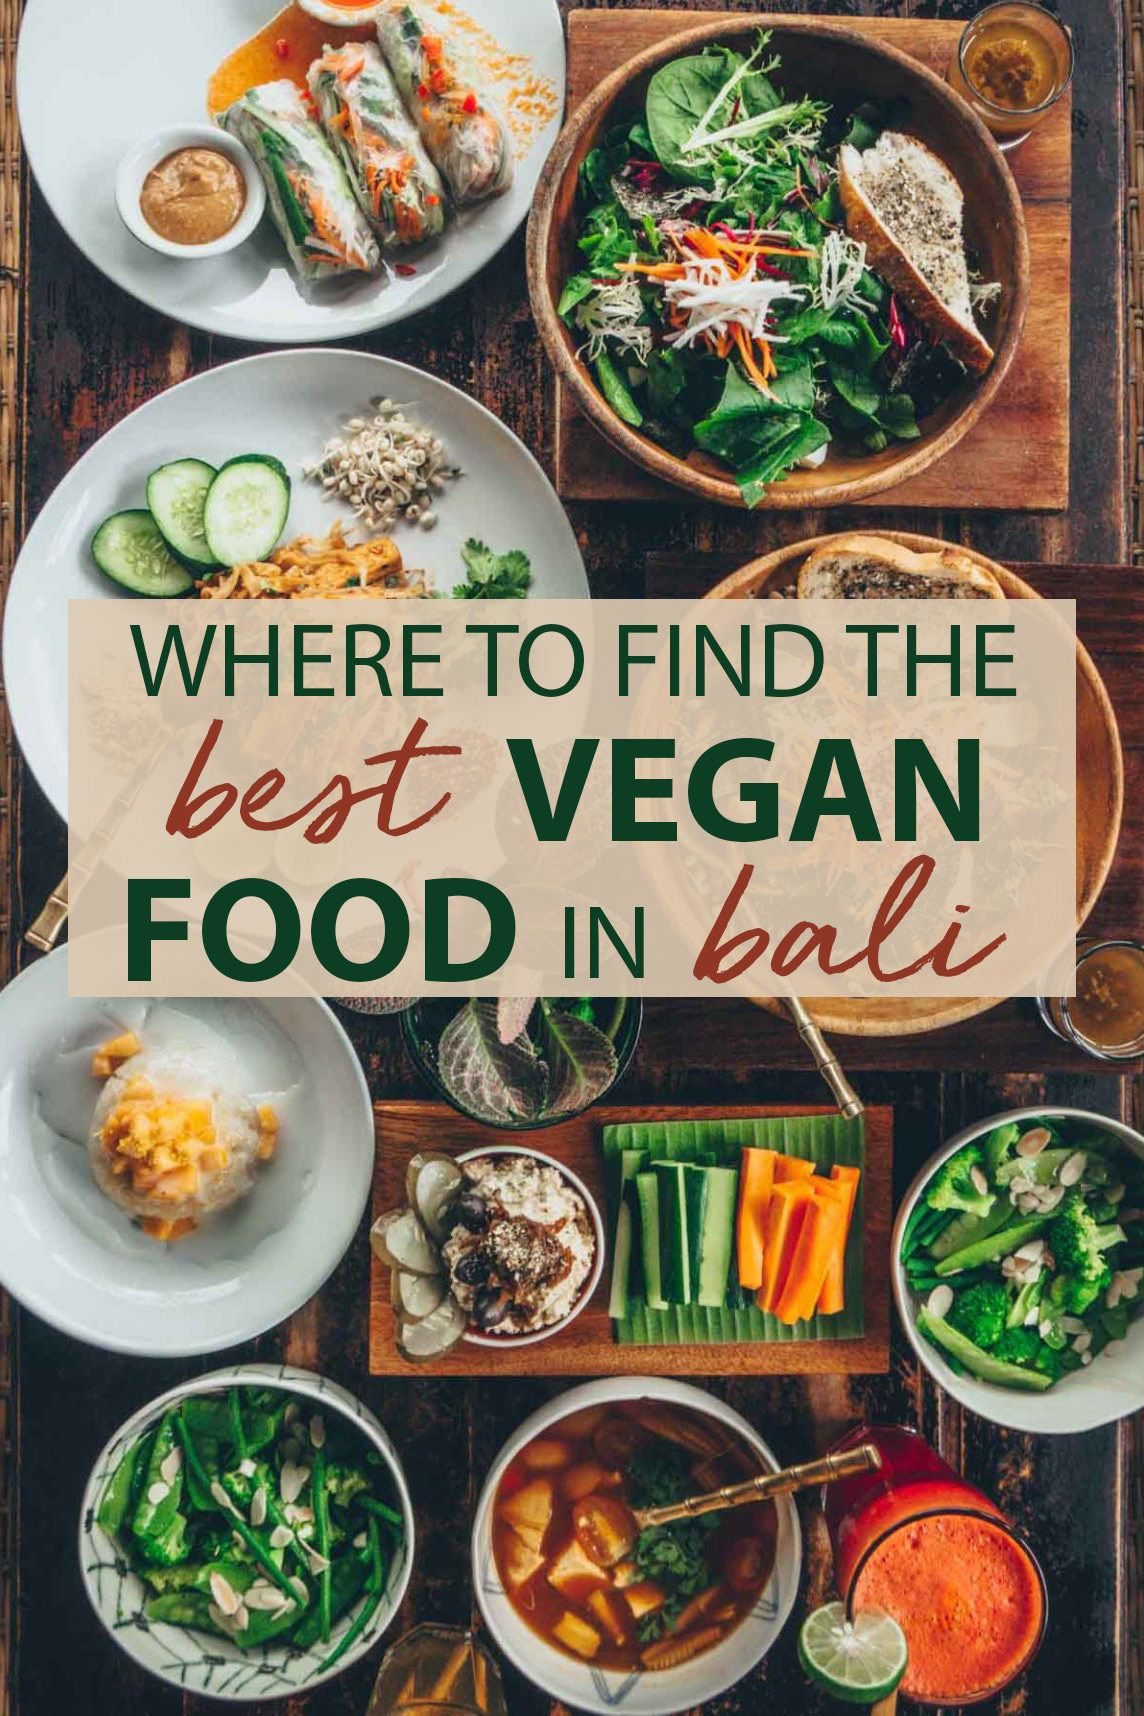 Cuisine Bali Where To Find The Best Vegan Food In Bali The Blonde Abroad